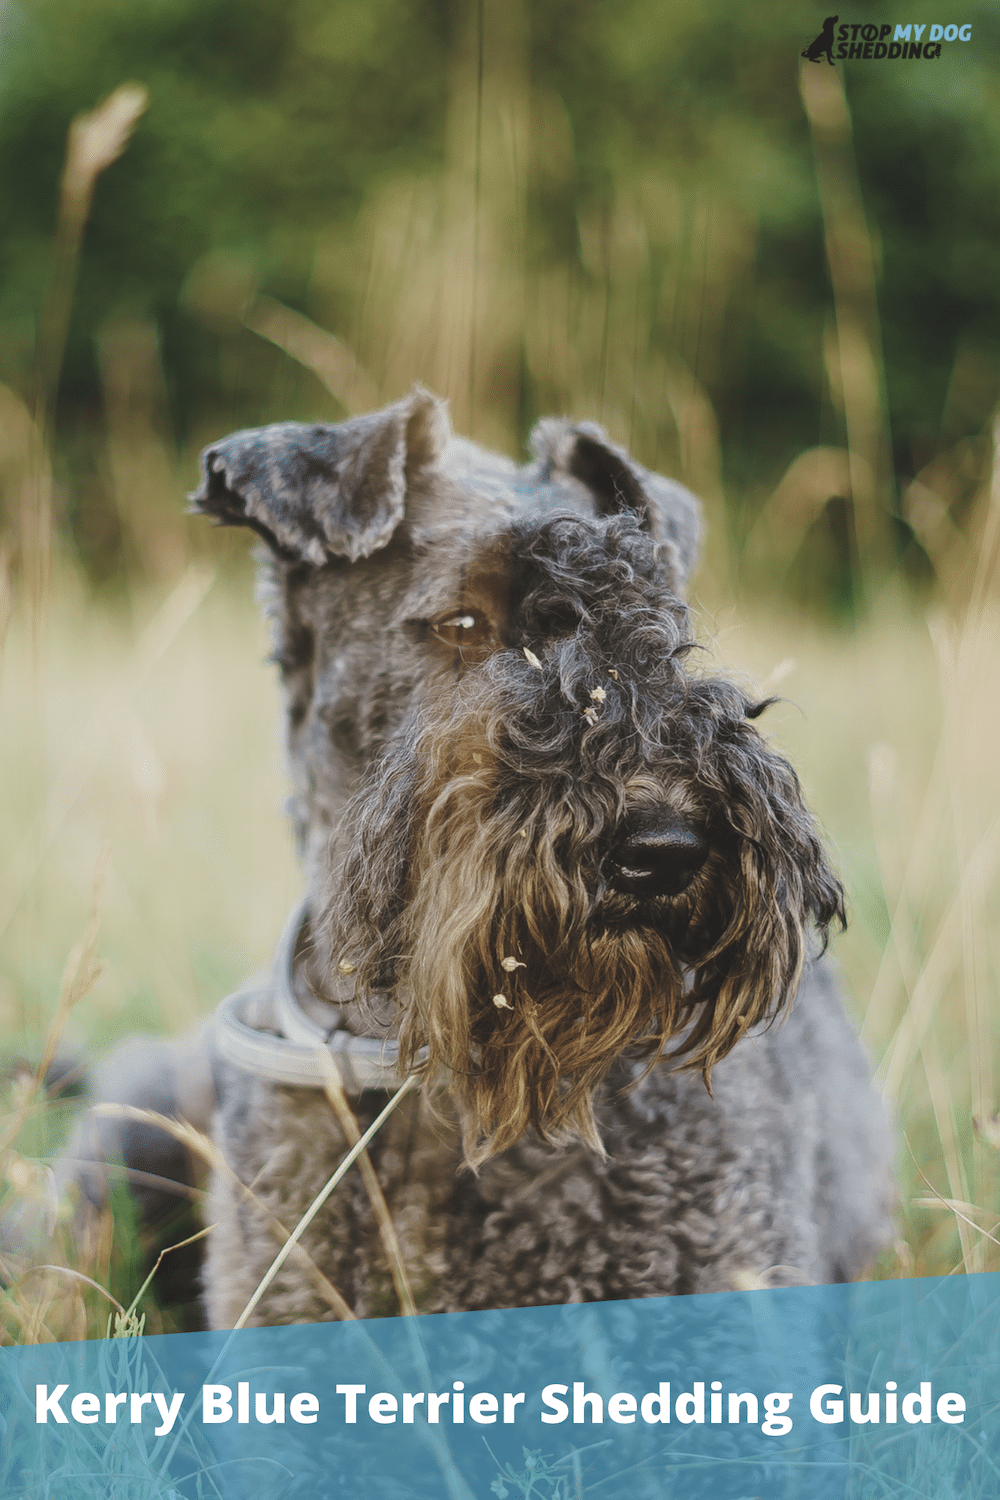 Do Kerry Blue Terriers Shed? (Shedding & Grooming Guide)